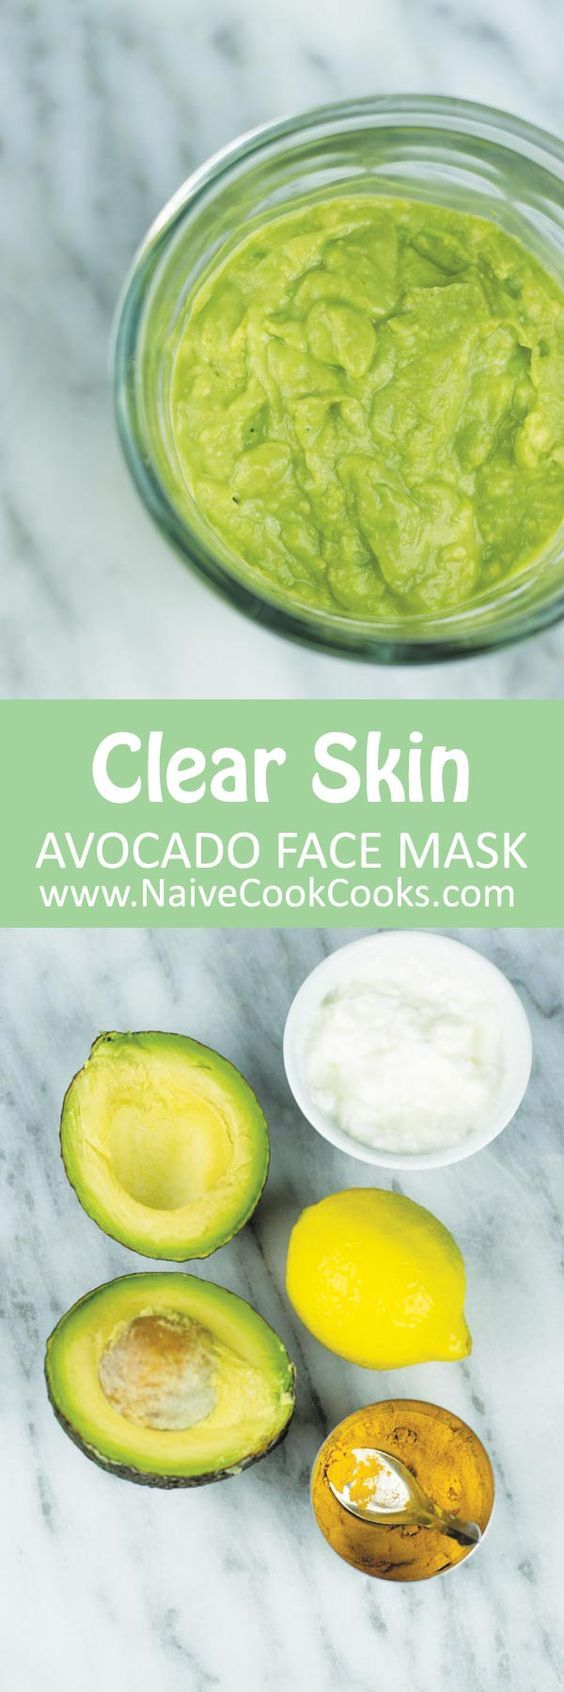 Homemade avocado face mask for clear skin. Only 4 ingredients which you already have in your kitchen.